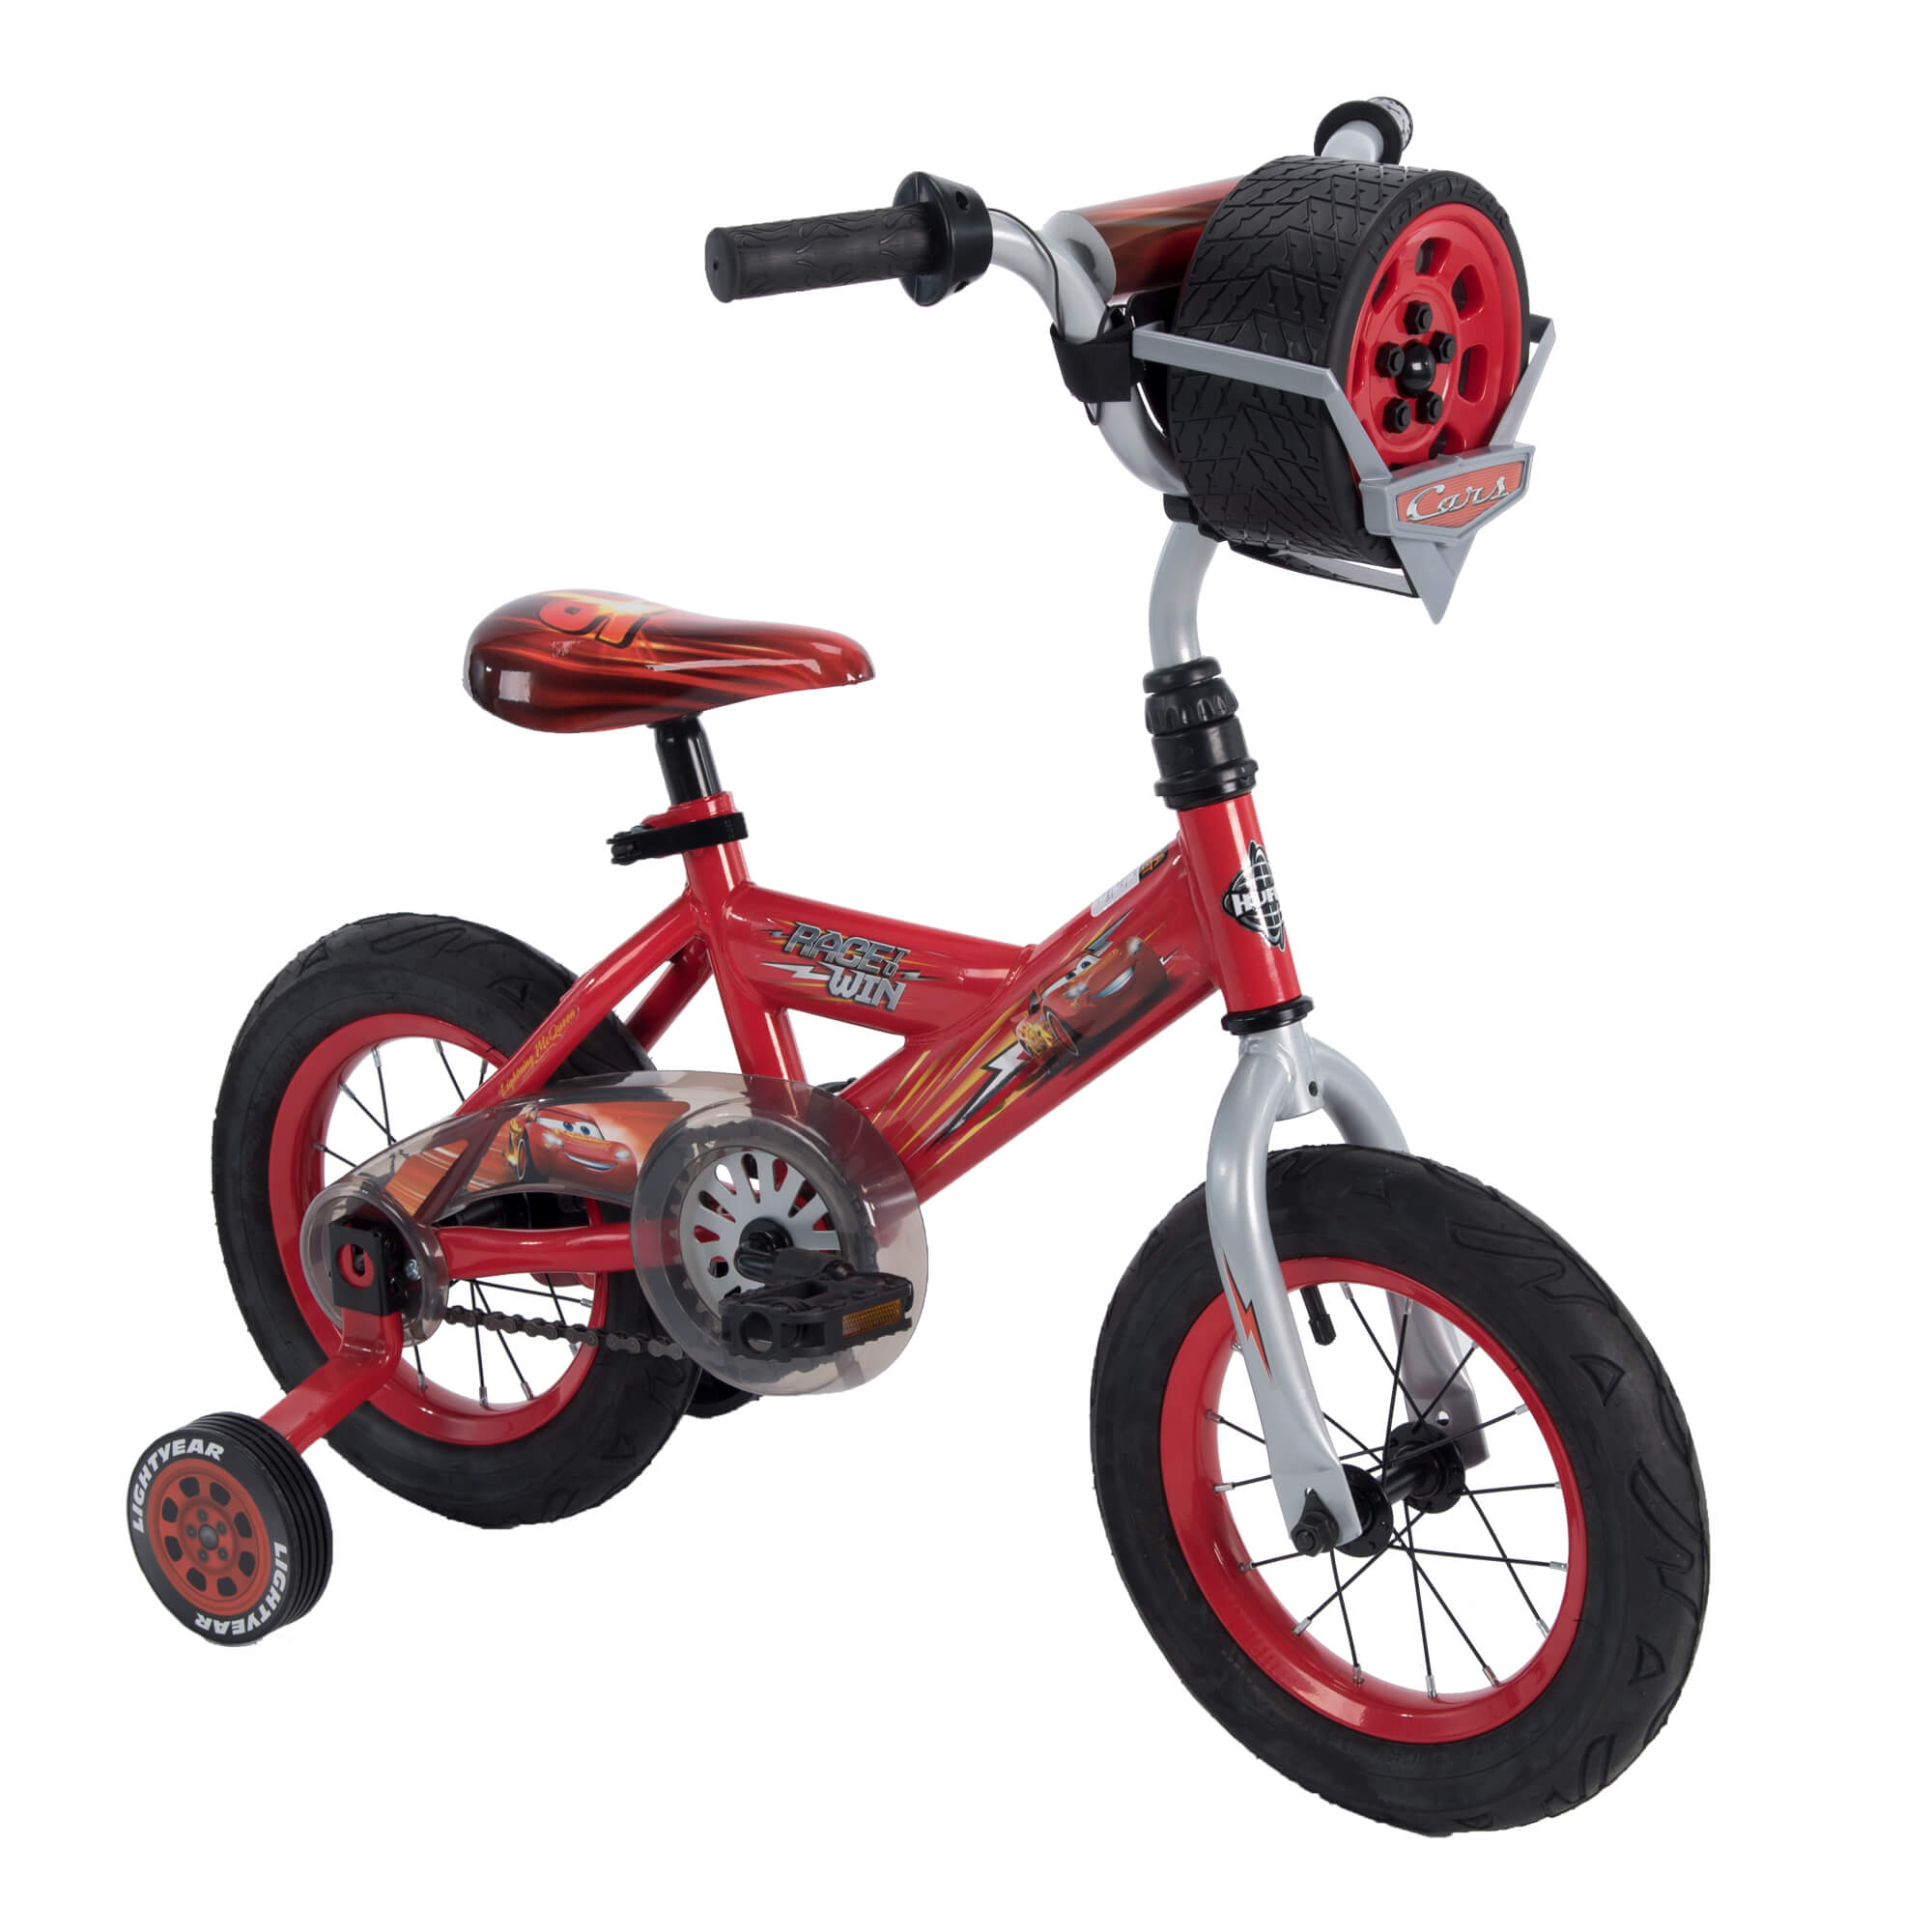 Bike 3 Year Old 4 With Training Wheels Pixar Cars Lightning Mcqueen